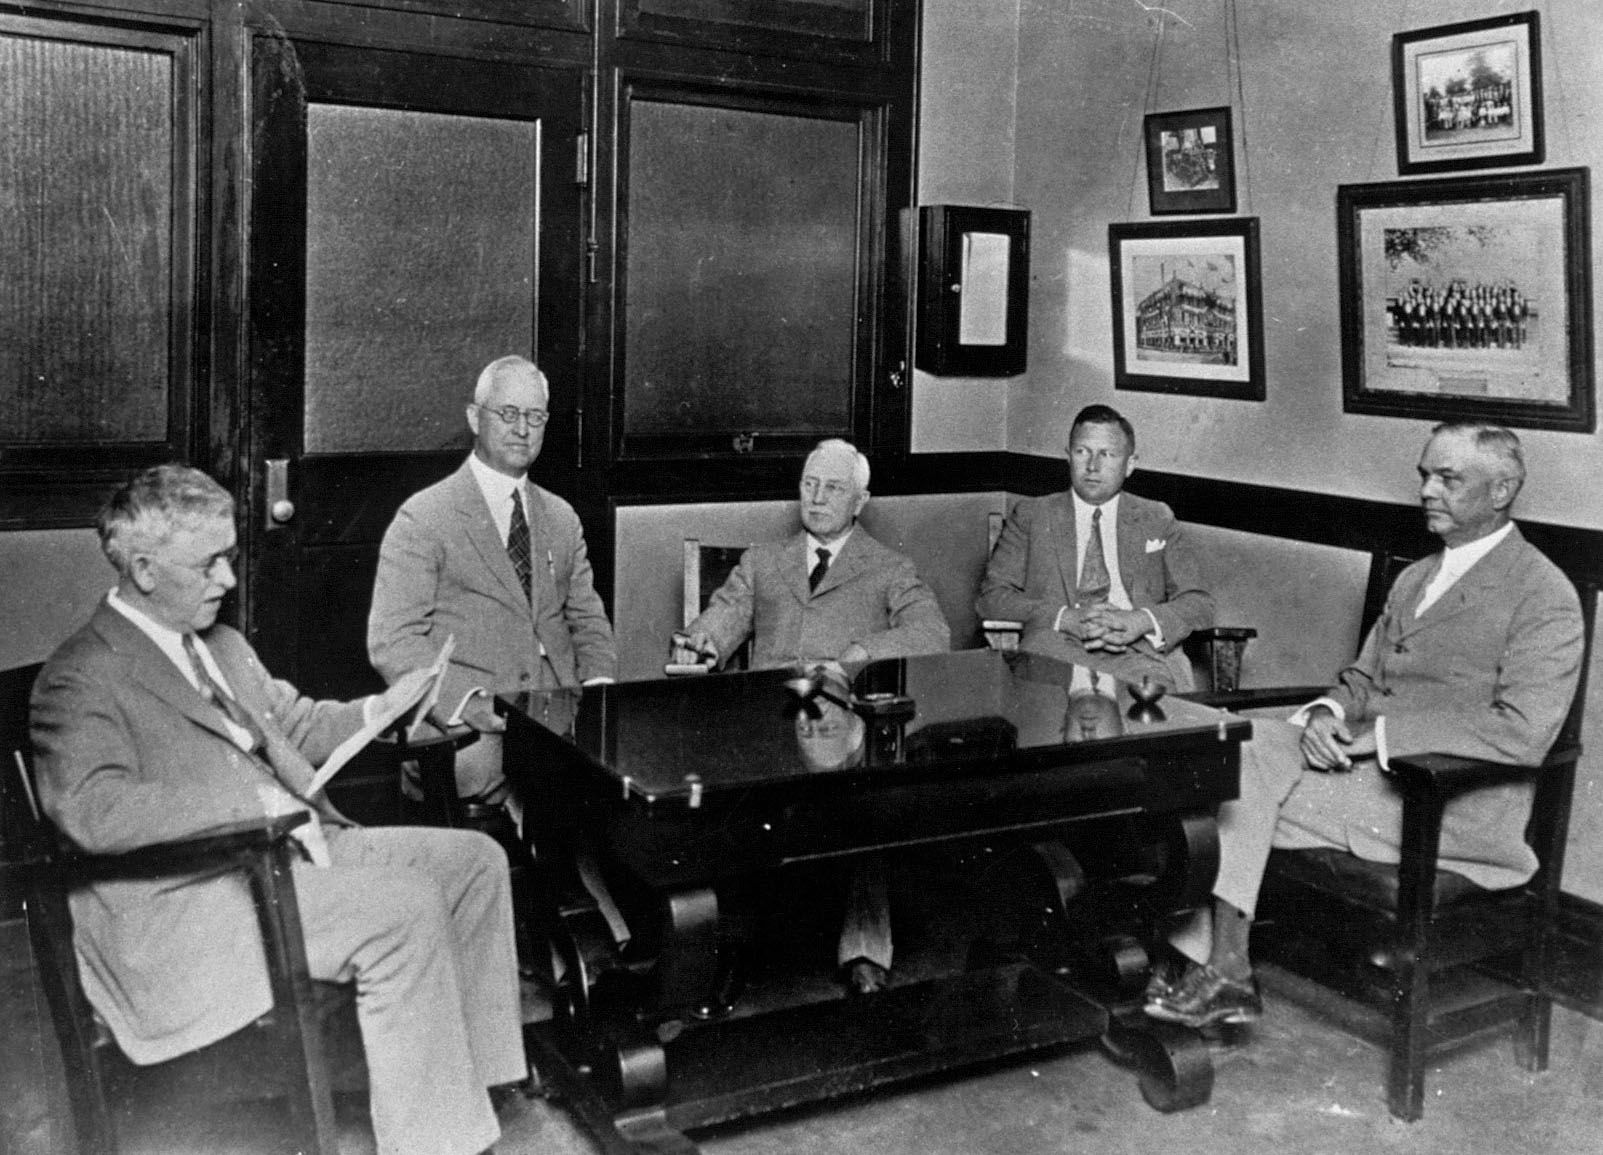 Directors of A. H. Belo & Co. (from left) Tom Finty Jr., John F. Lubben, G.B. Dealey, Walter A. Dealey and Ennis Cargill convene a session in the office of G.B. Dealey on Sept. 22, 1925, just prior to the 40th anniversary of The Dallas Morning News. A year later, G.B. Dealey bought a majority interest in A. H. Belo & Co.